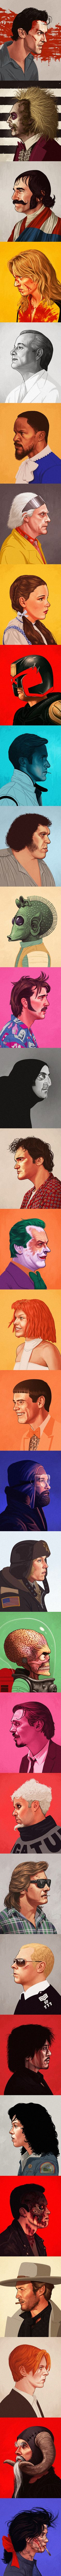 Pop culture icon by Mike Mitchell